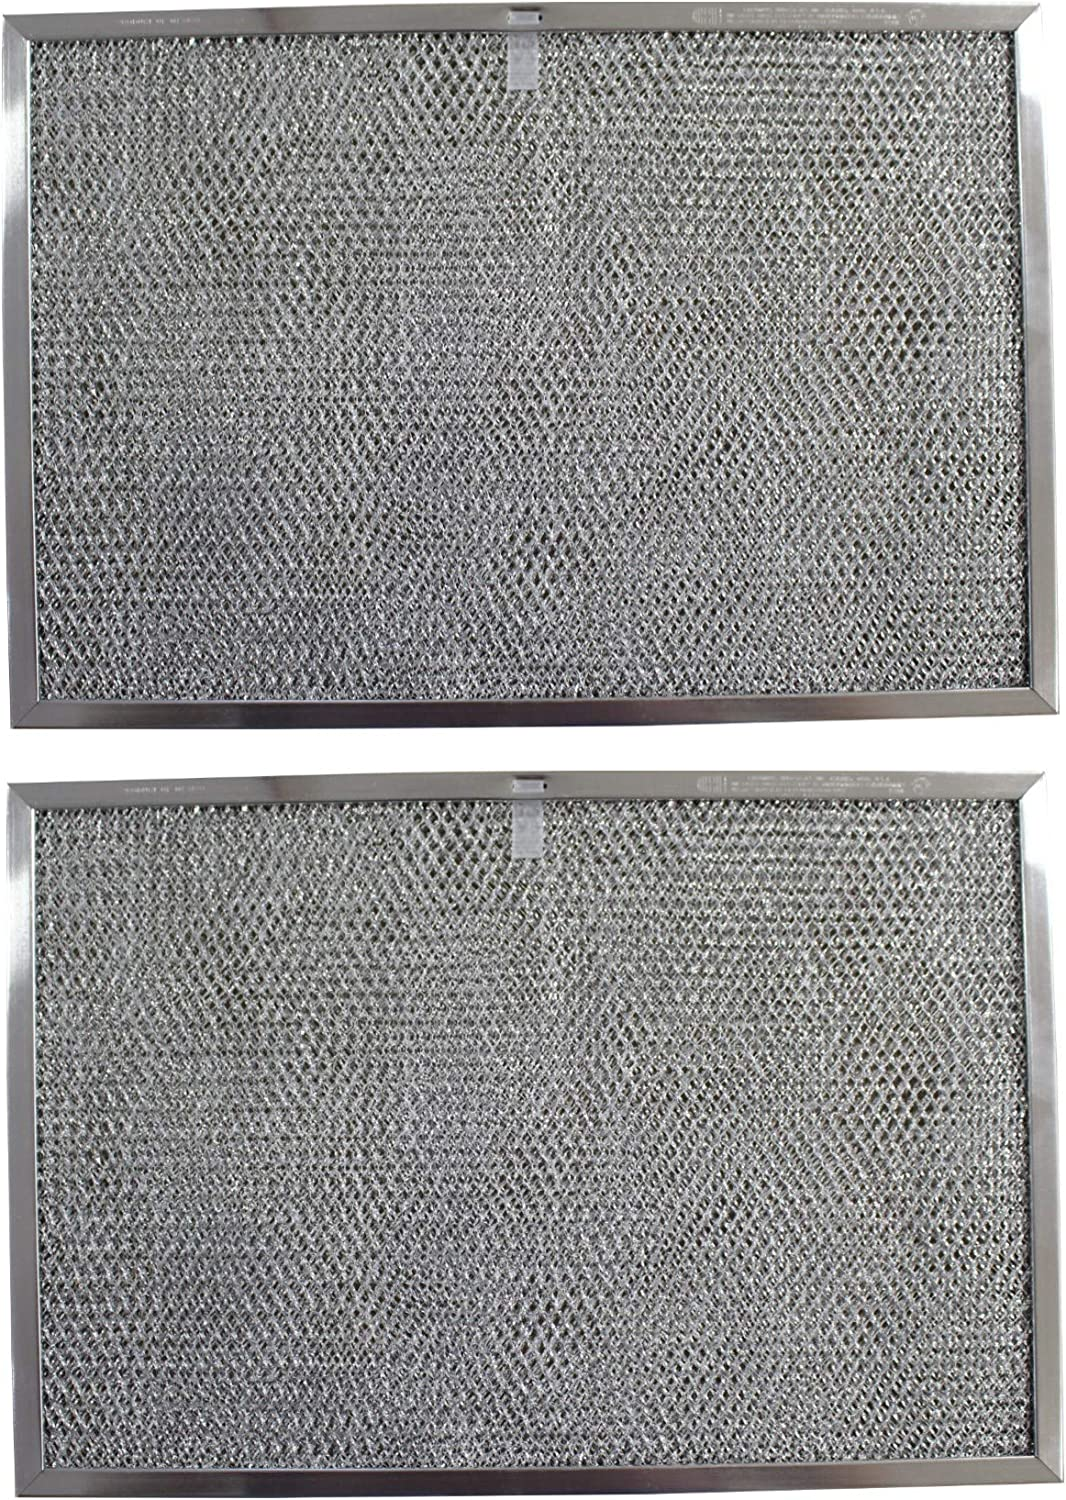 PT SS GE WB2X9761,GC-7510,RHP1102-11-7//16 X 17 X 3//8 Replacement Aluminum Filters Compatible with GE WB20X9761 GE WB2X2892 2-Pack